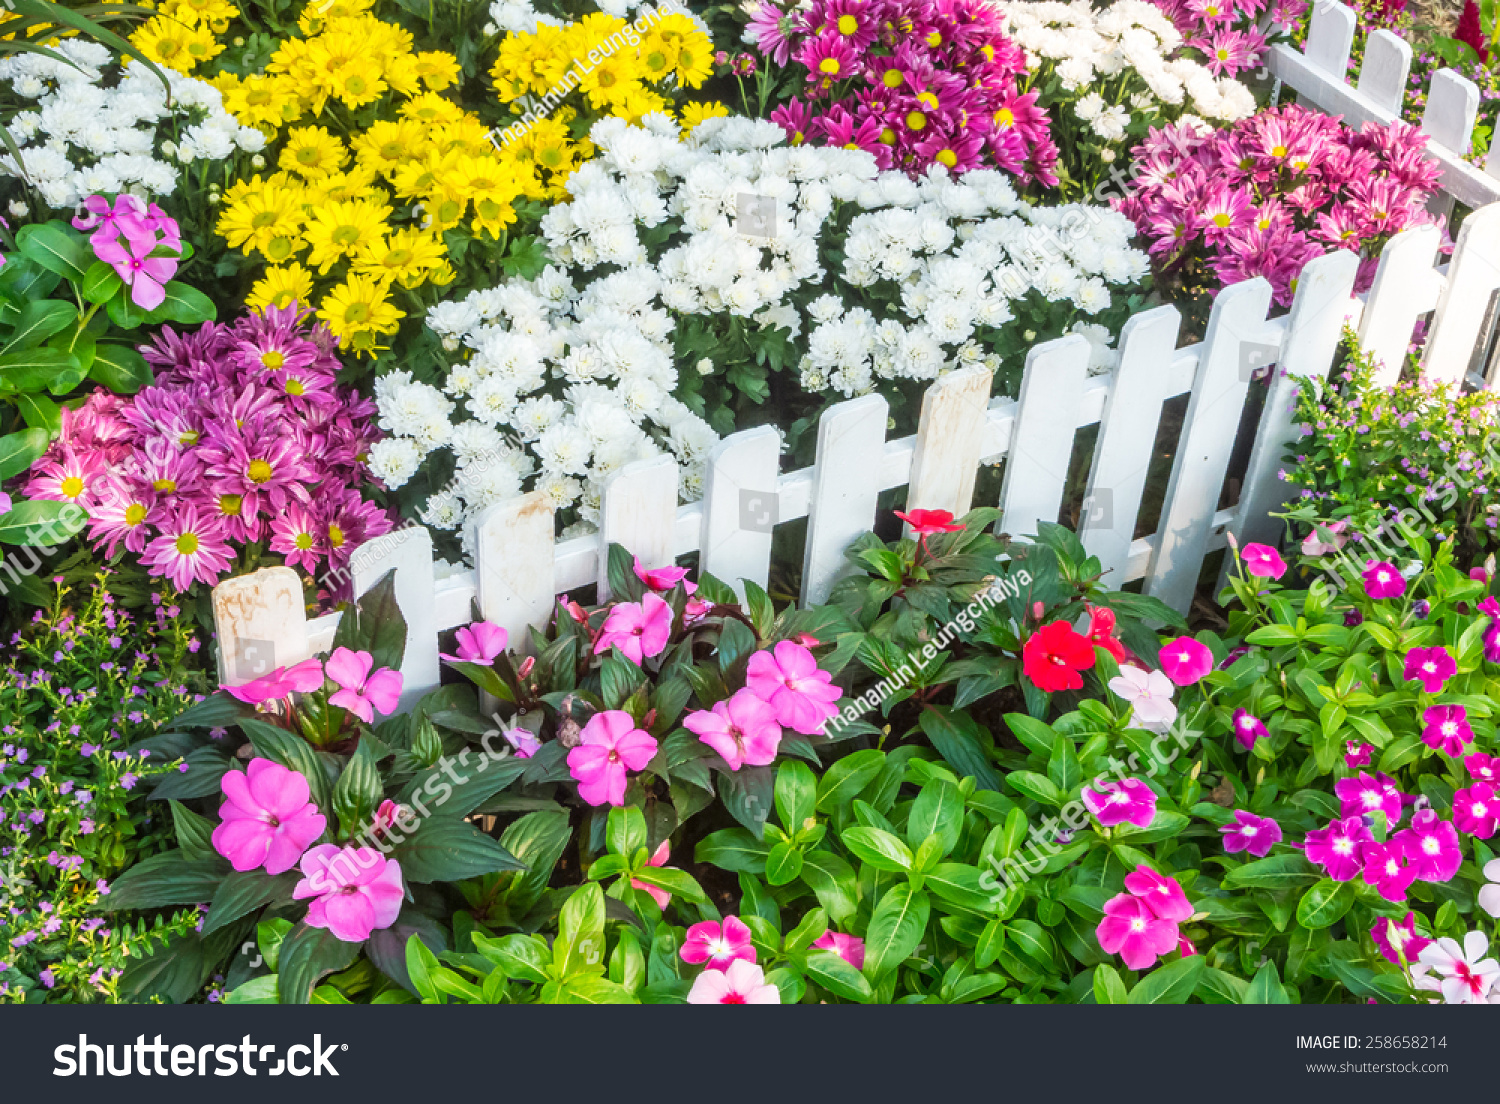 White picket fence surrounded by flowers stock photo for Flower for front yard gardens